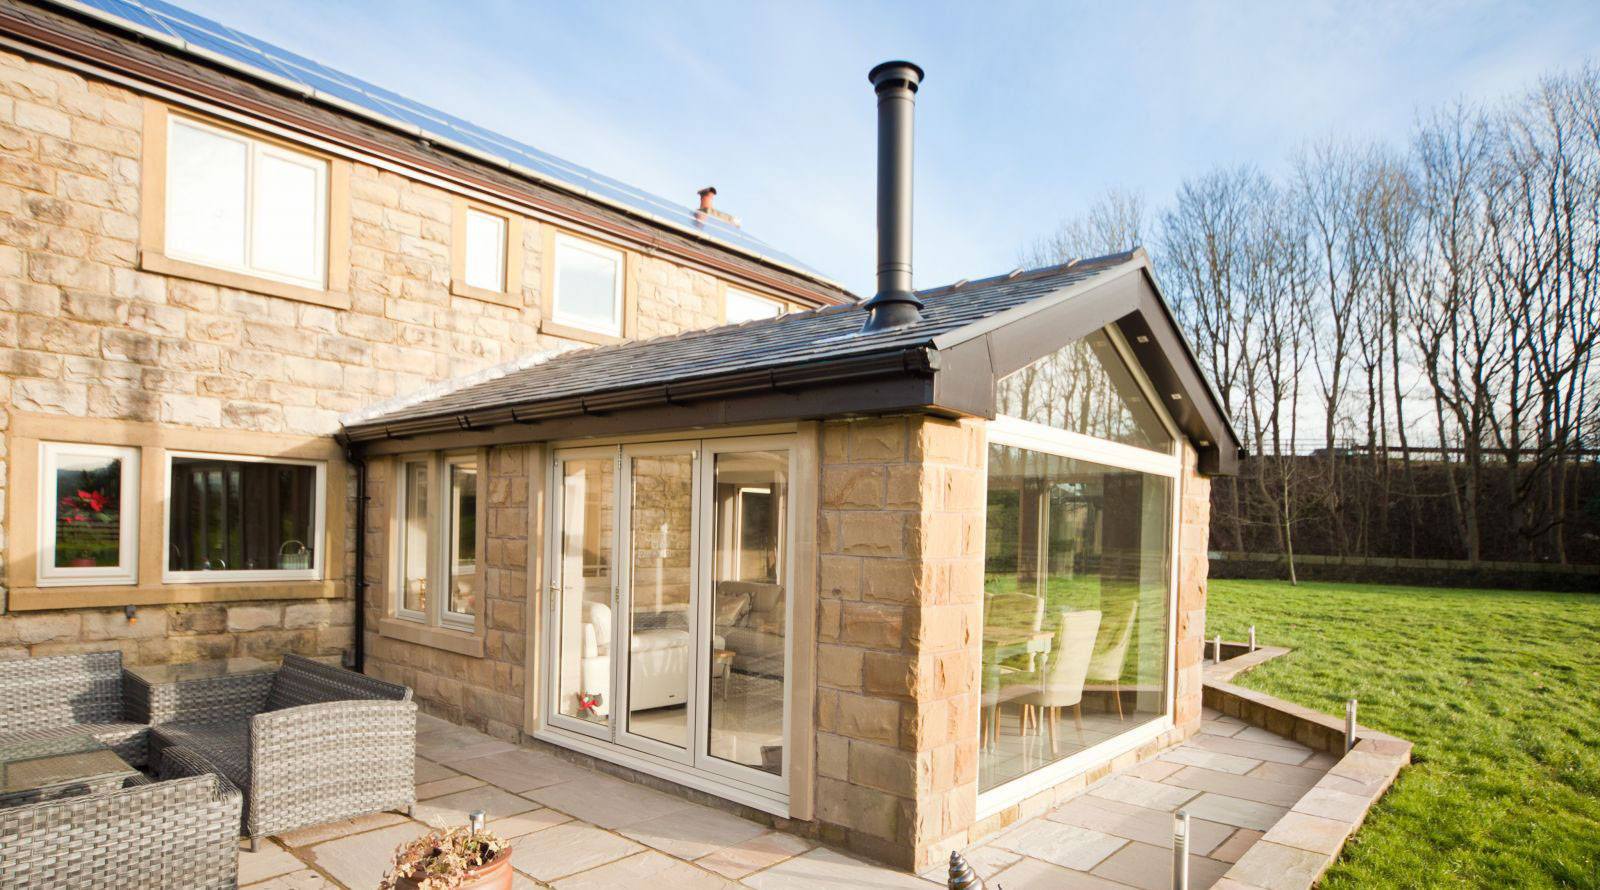 Oak Extension Veranda Berkshire besides Abri A Bois besides French Doors likewise Guide Building Bahay Kubo in addition Gallery. on lean to patio